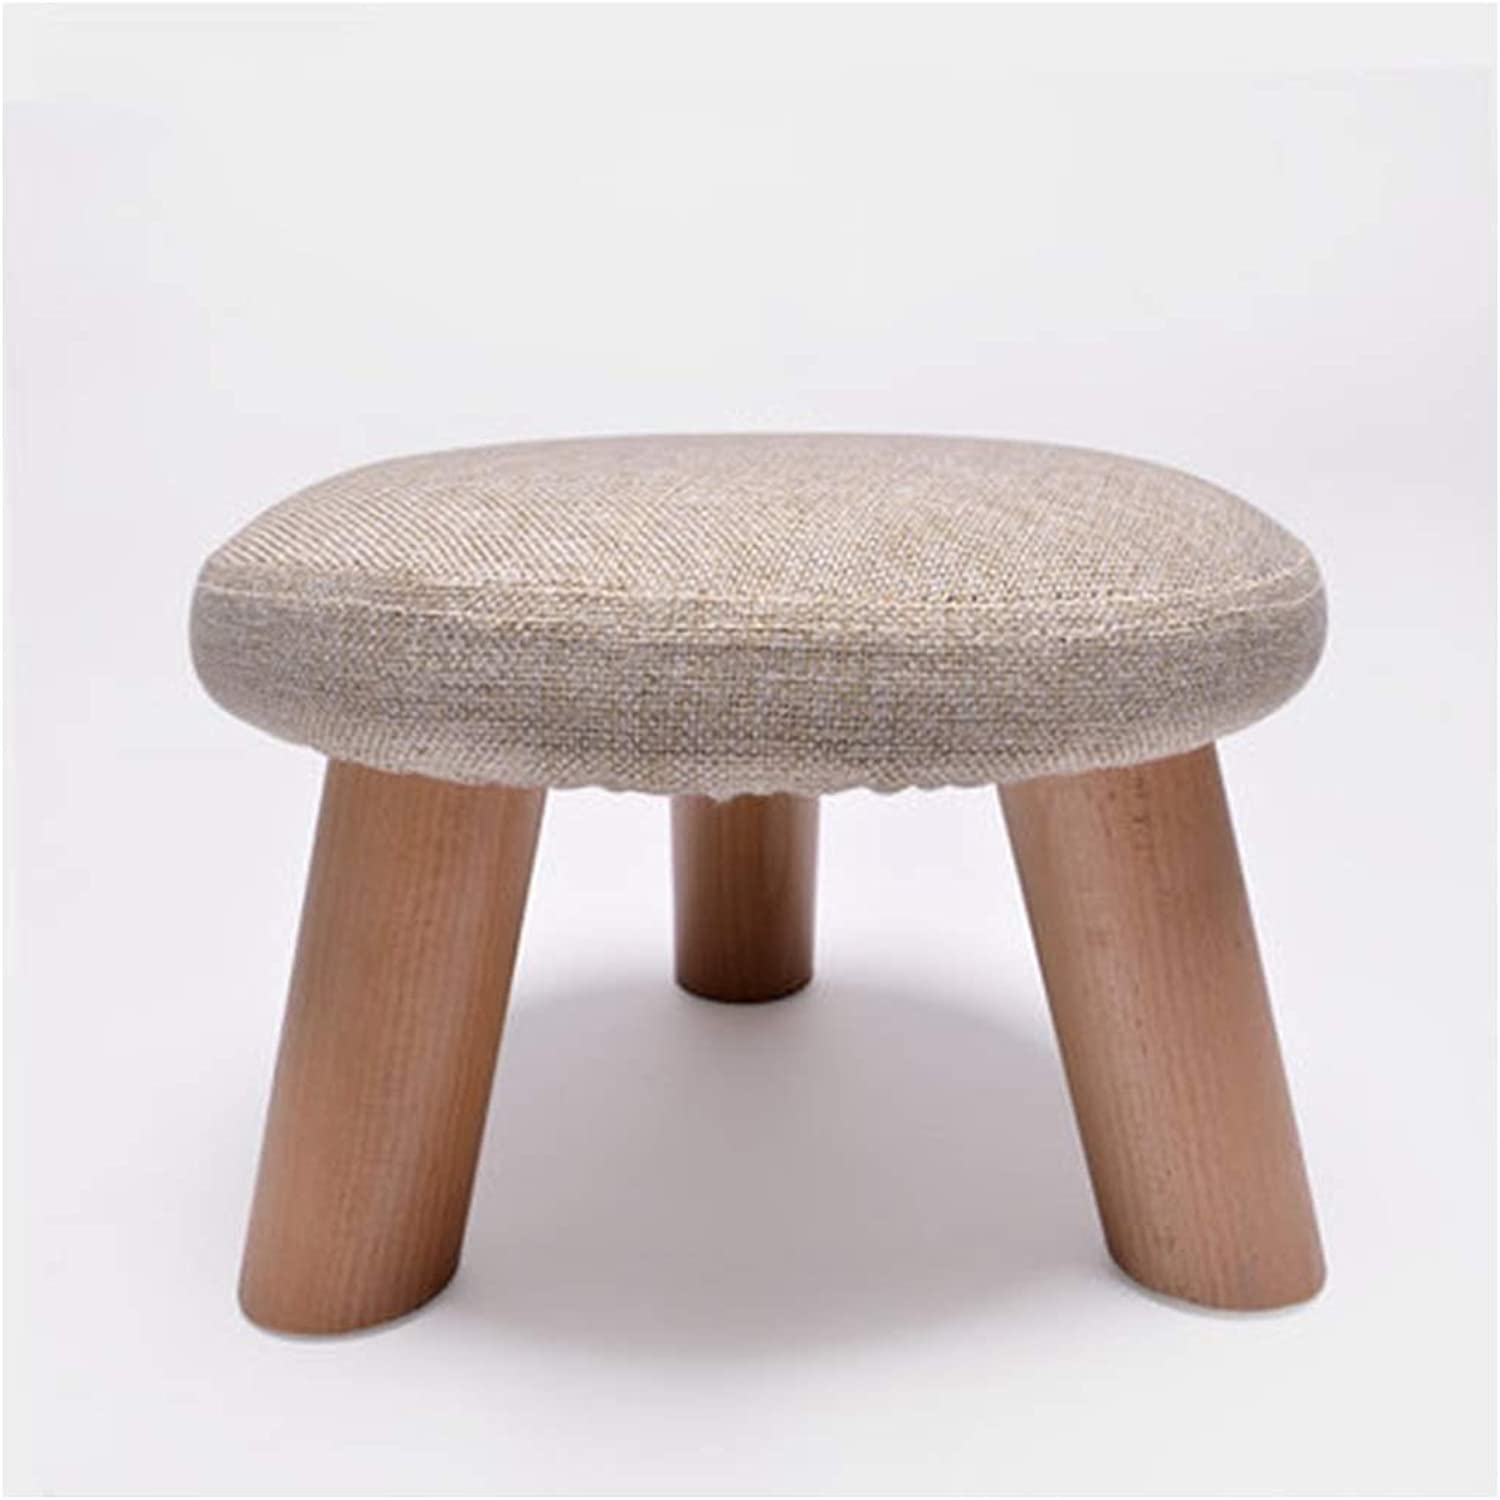 B.YDCM Wooden Bench- Fashion shoes Bench Stool Solid Wood Footstool Stool Stool Stool Fabric Bench Sofa Bench Coffee Table Stool - Wood Bench (color   A, Size   Small)